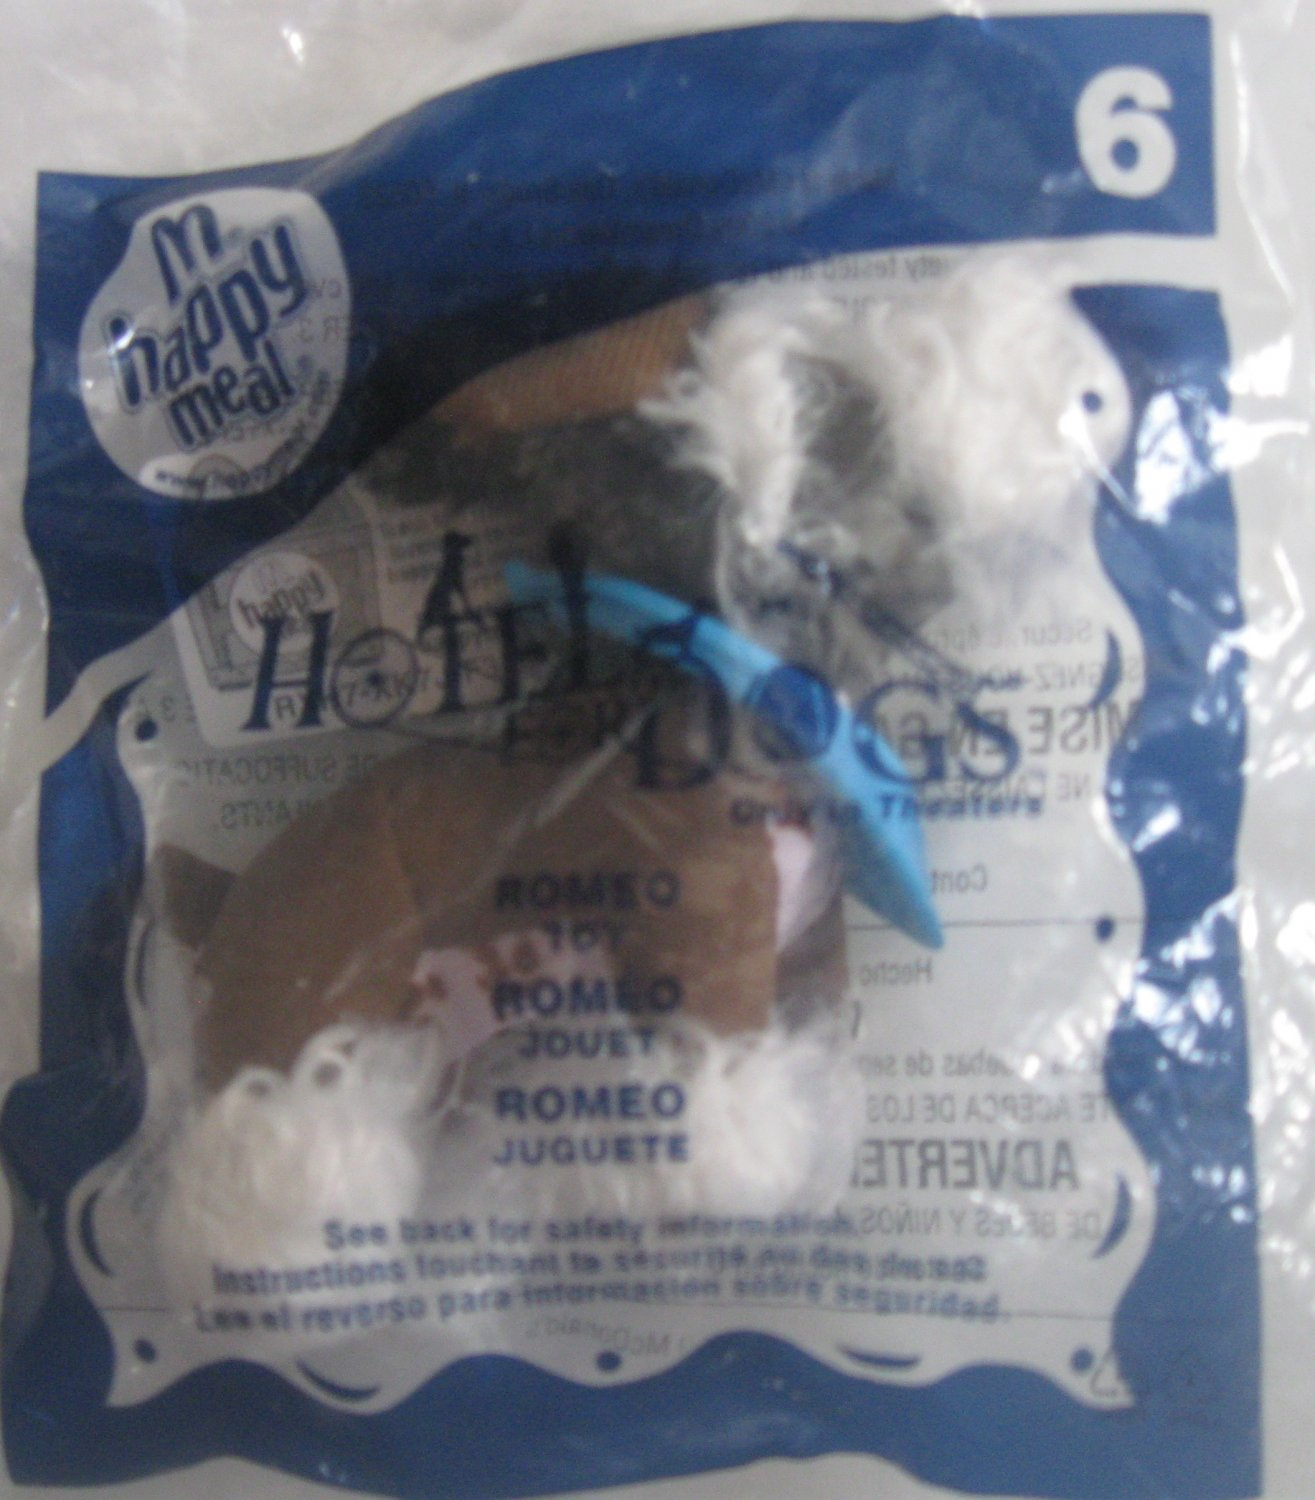 McDonald's Happy Meal Toy Hotel for Dogs Romeo #6 2009